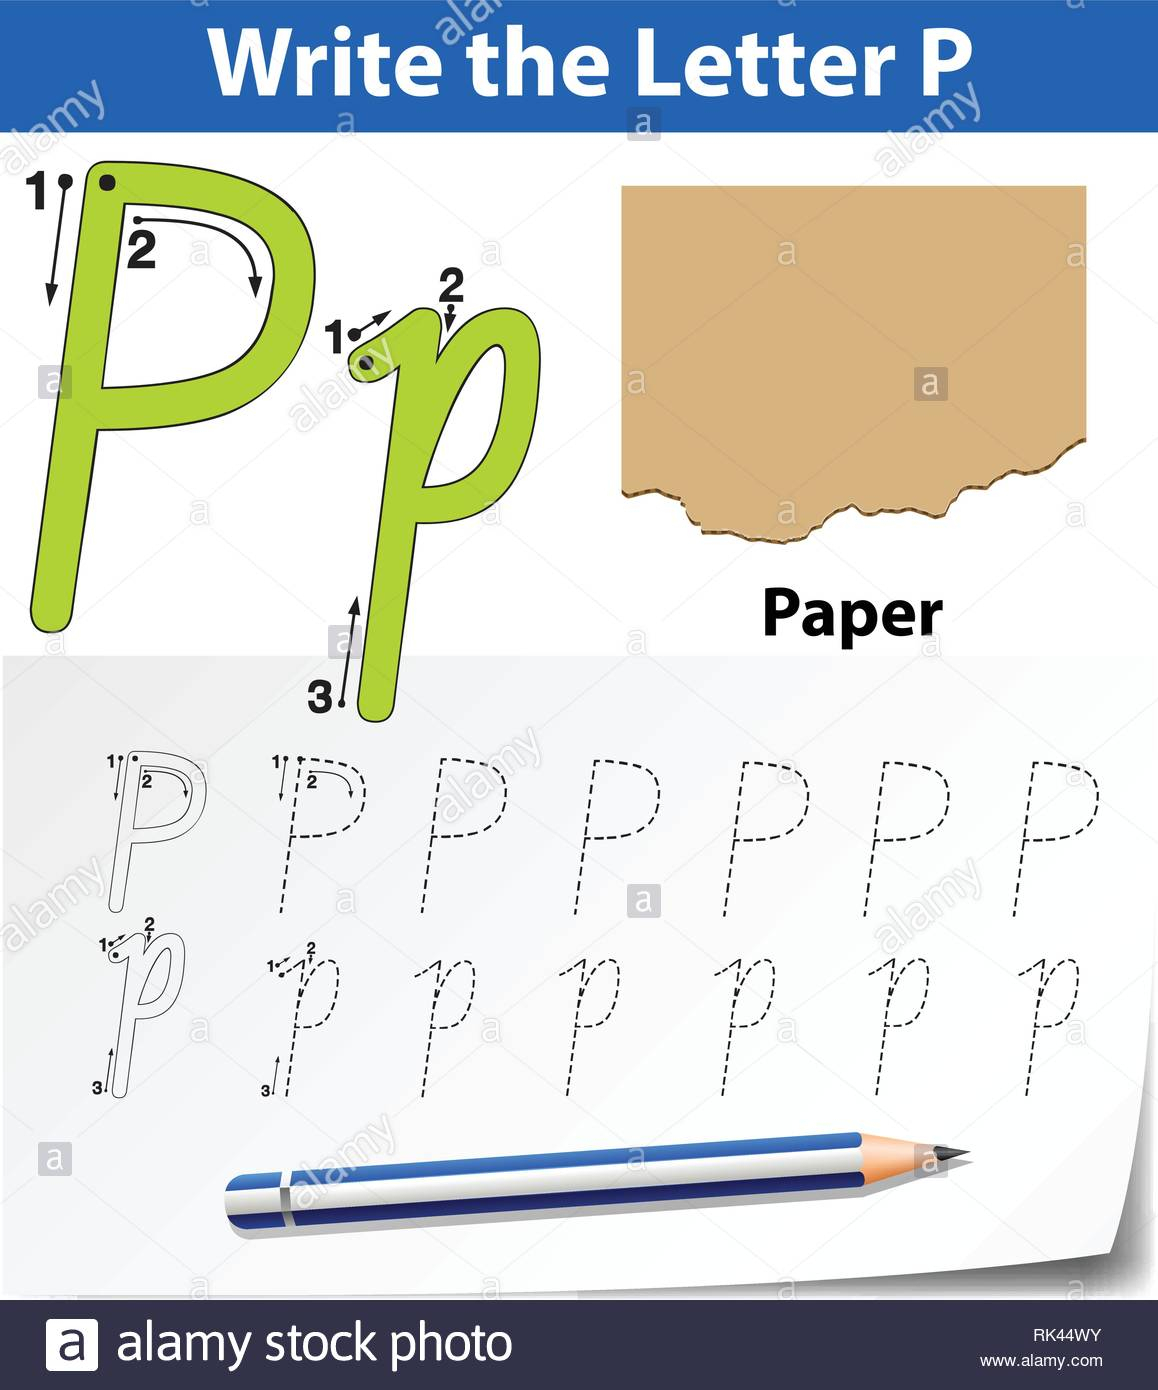 Letter P Tracing Alphabet Worksheets Illustration Stock for Letter P Tracing Paper